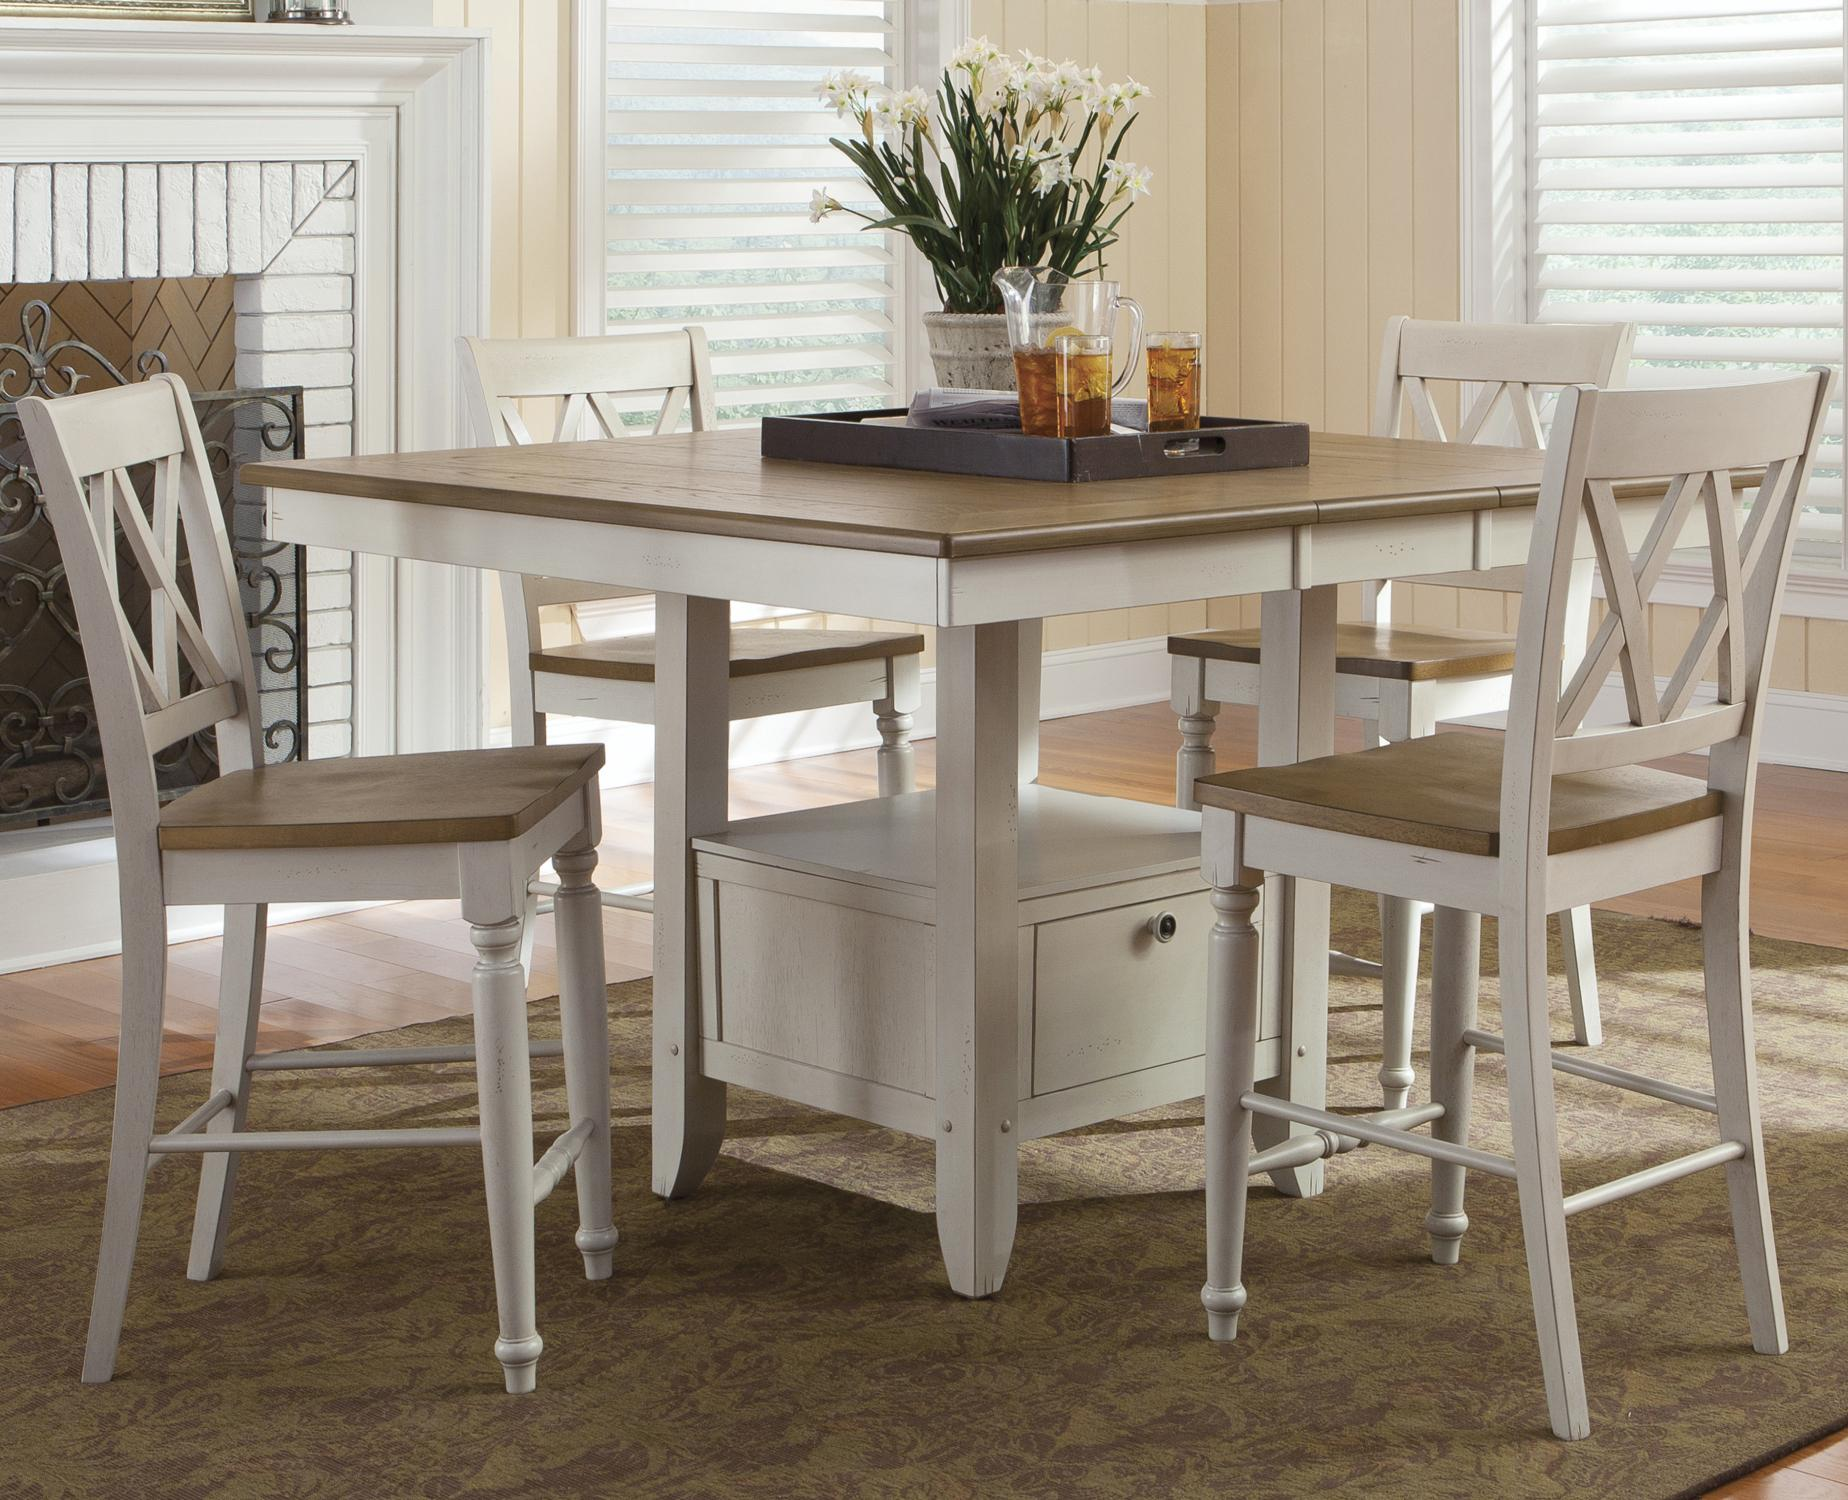 liberty furniture dining table. Liberty Furniture Al Fresco III Round Drop-Leaf Dining Leg Table | Wayside Kitchen Tables